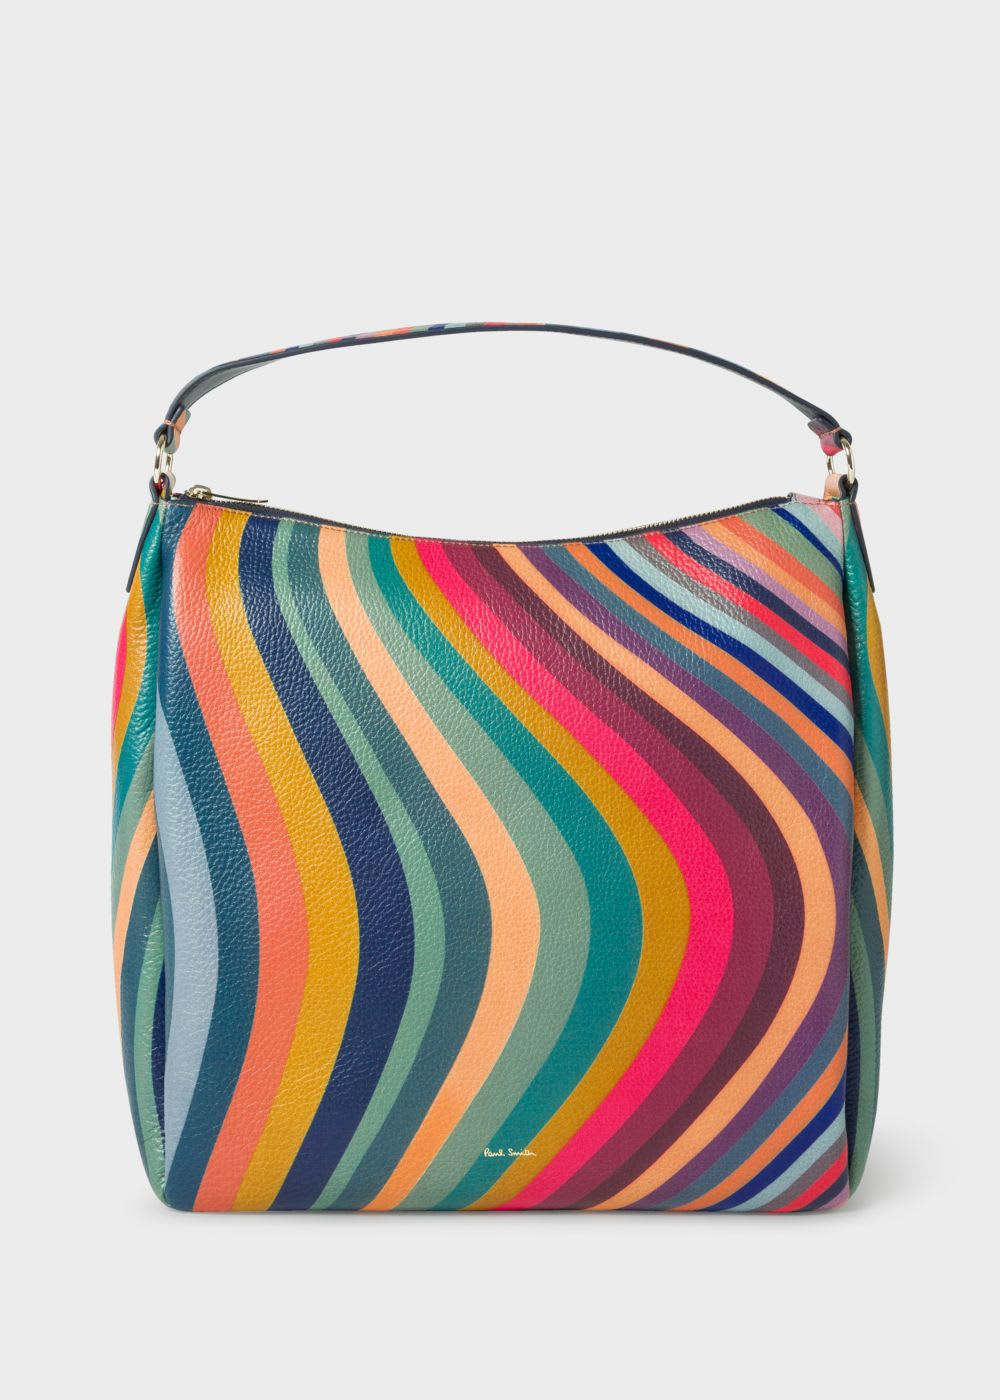 Paul Smith Mini Zip Hobo Swirl Print Bag